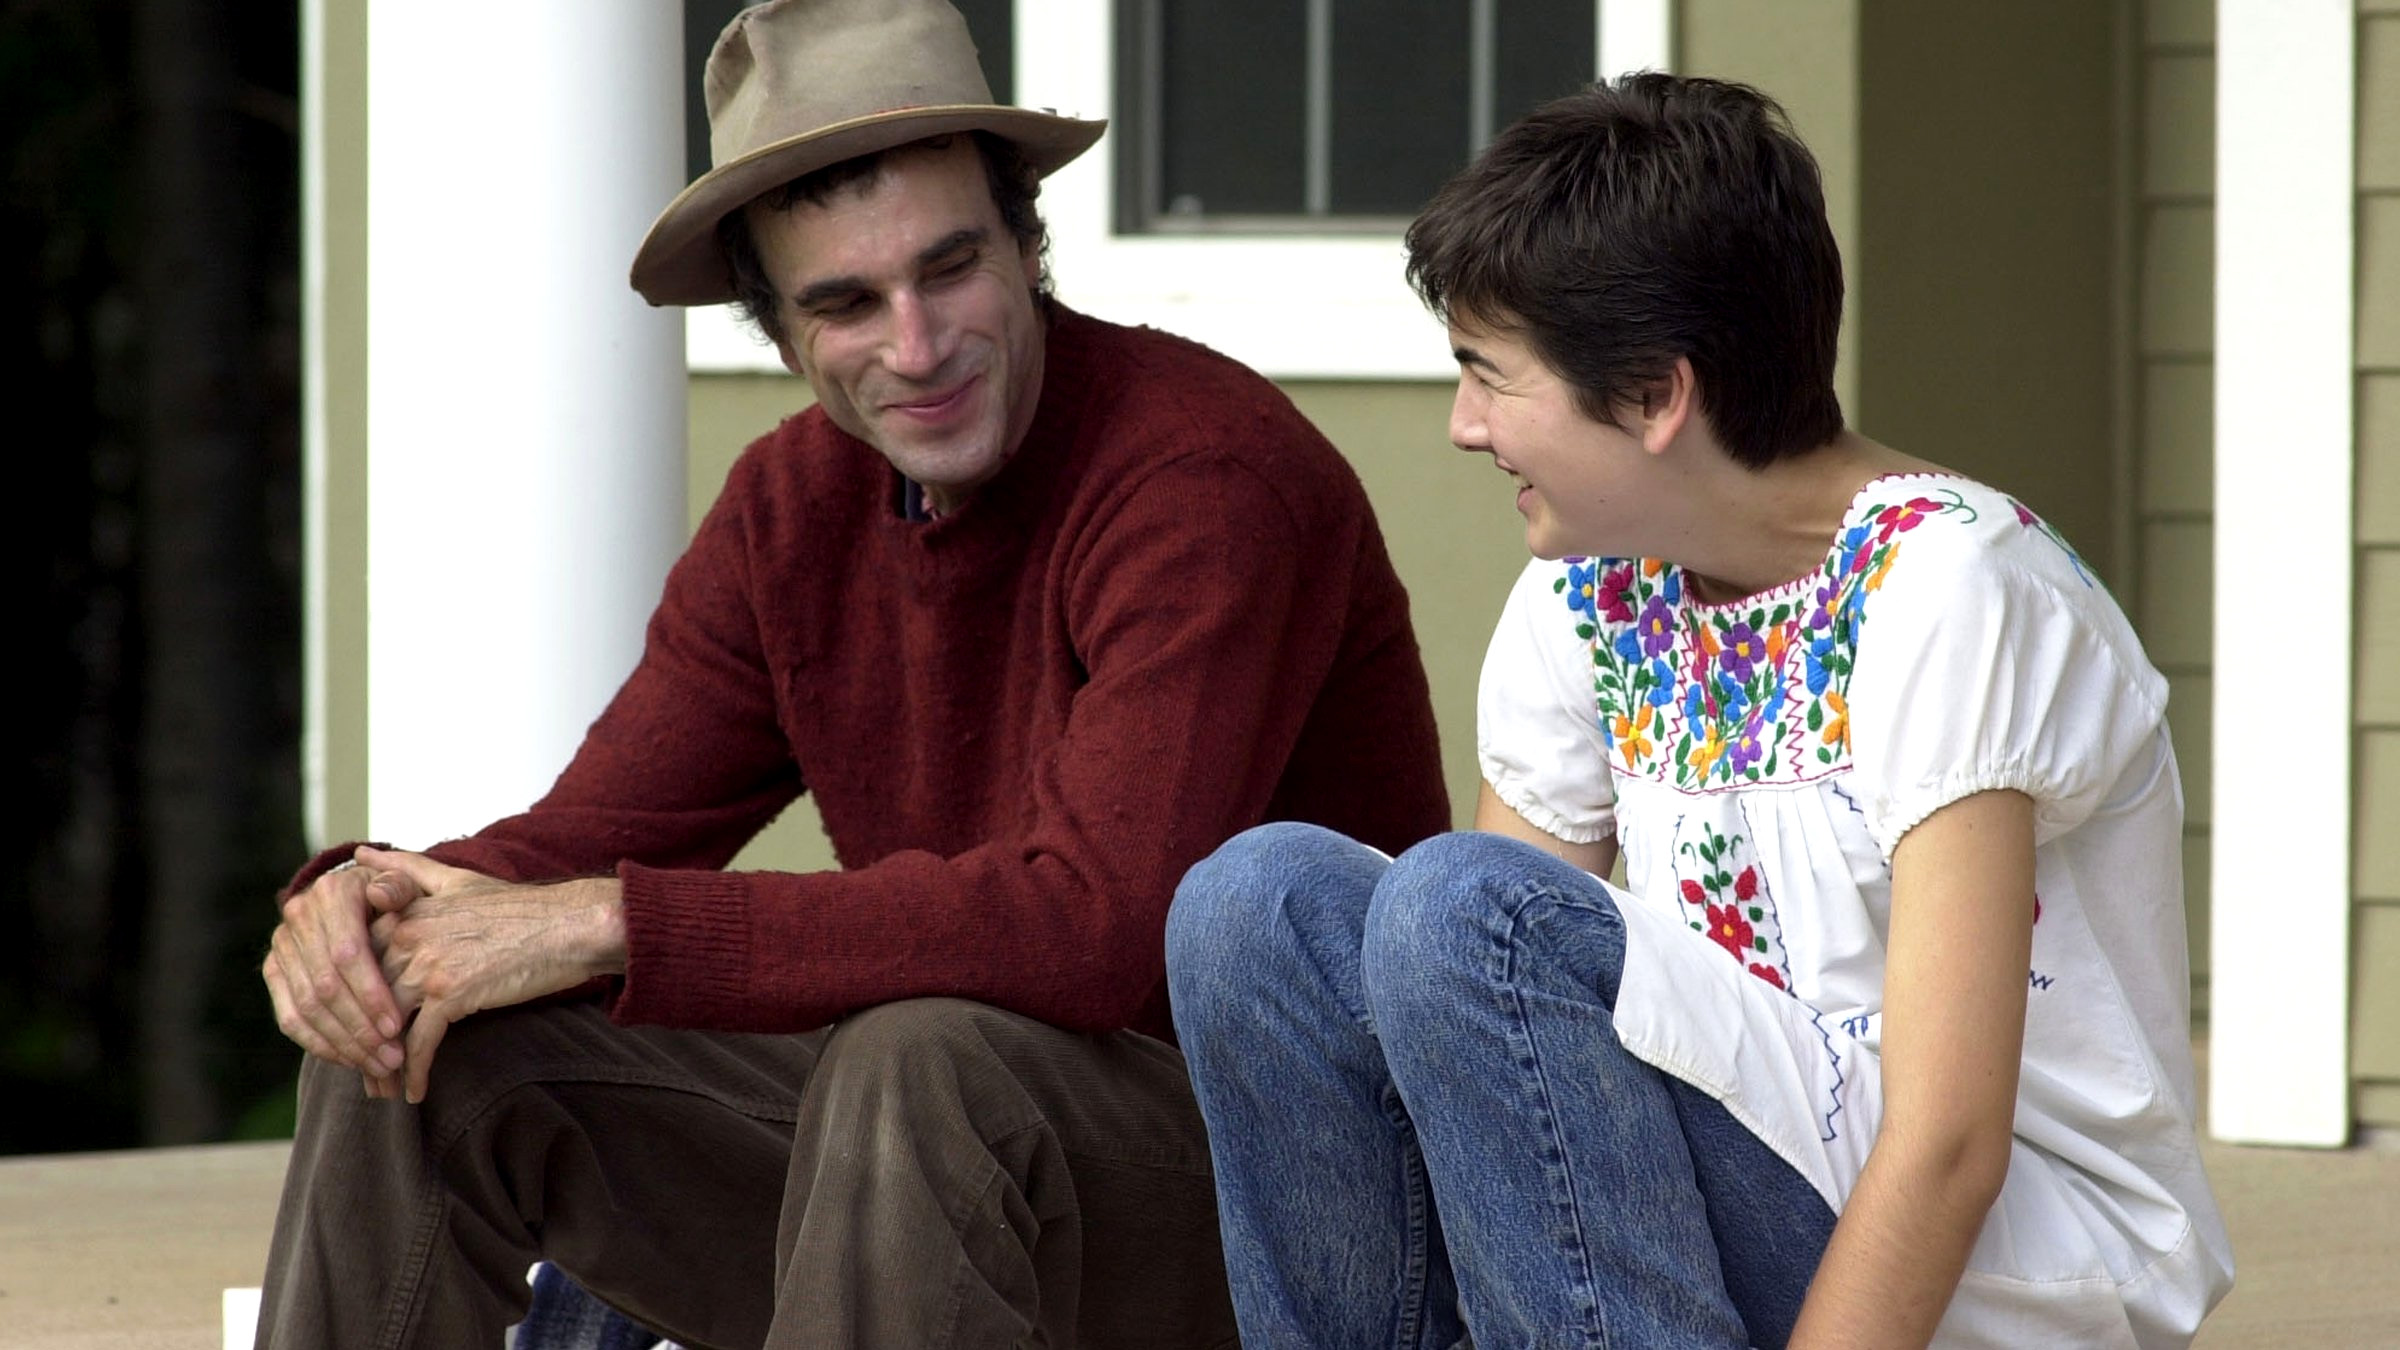 Daniel Day-Lewis and Camilla Belle in The Ballad of Jack and Rose